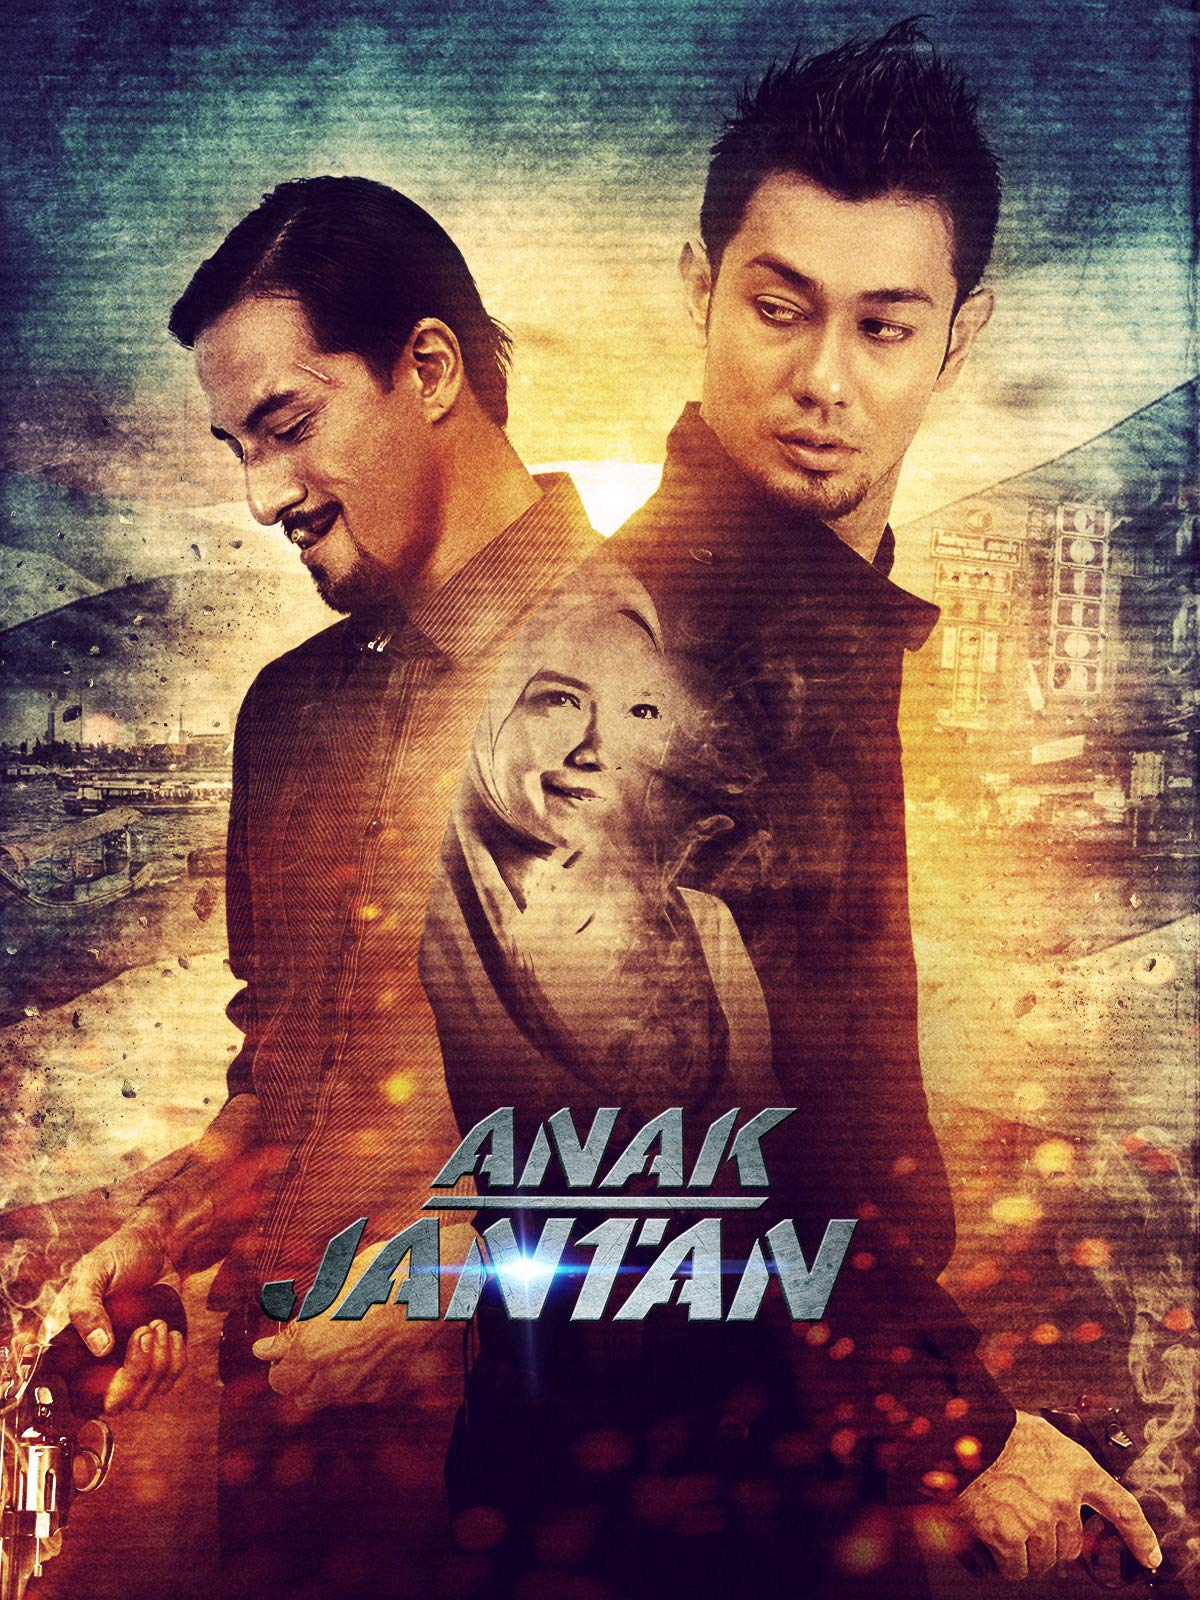 Anak Jantan (The Son)